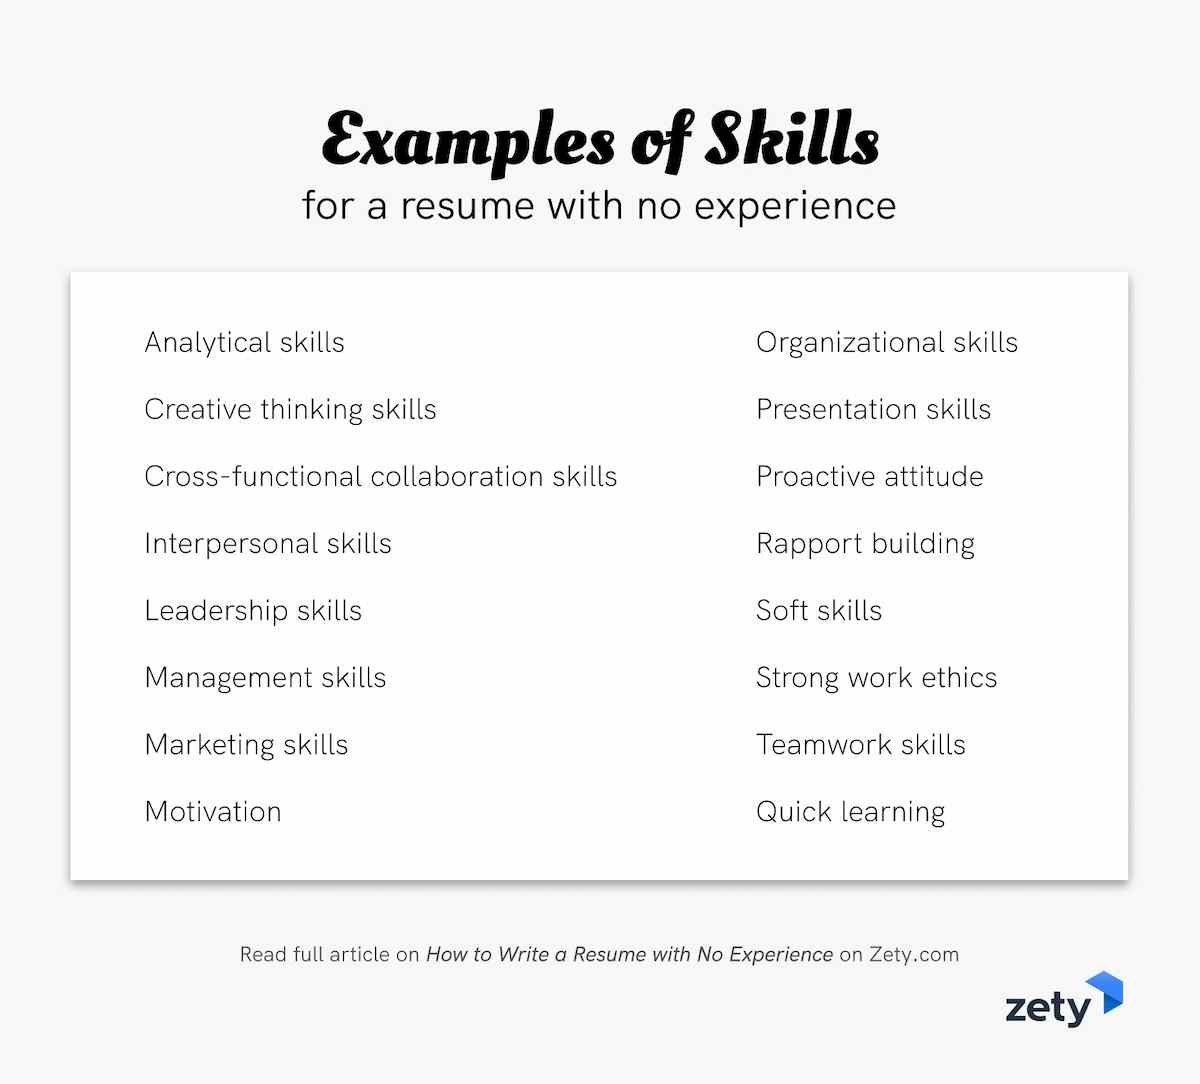 Examples of skills for a resume with no experience